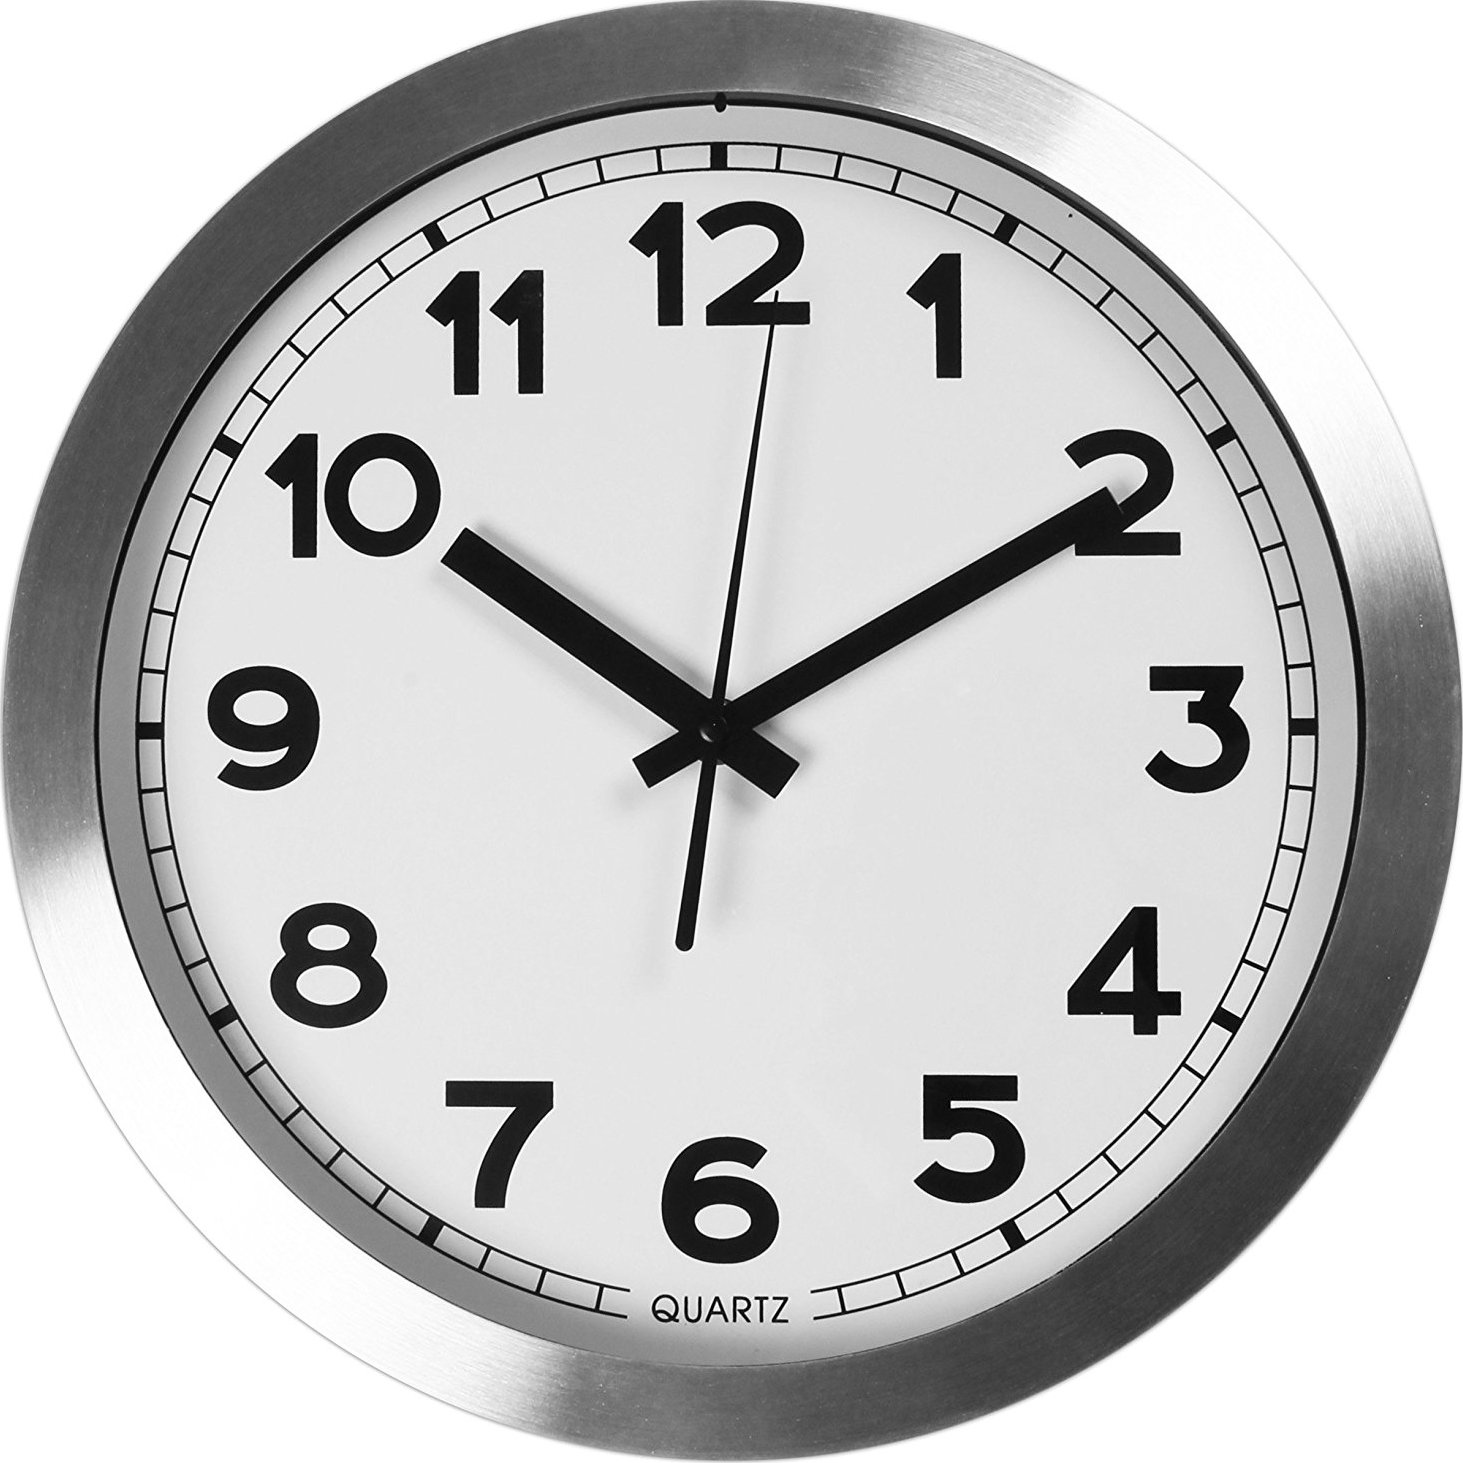 Amazon.com: Large Decorative Wall Clock - Universal Non - Ticking ...